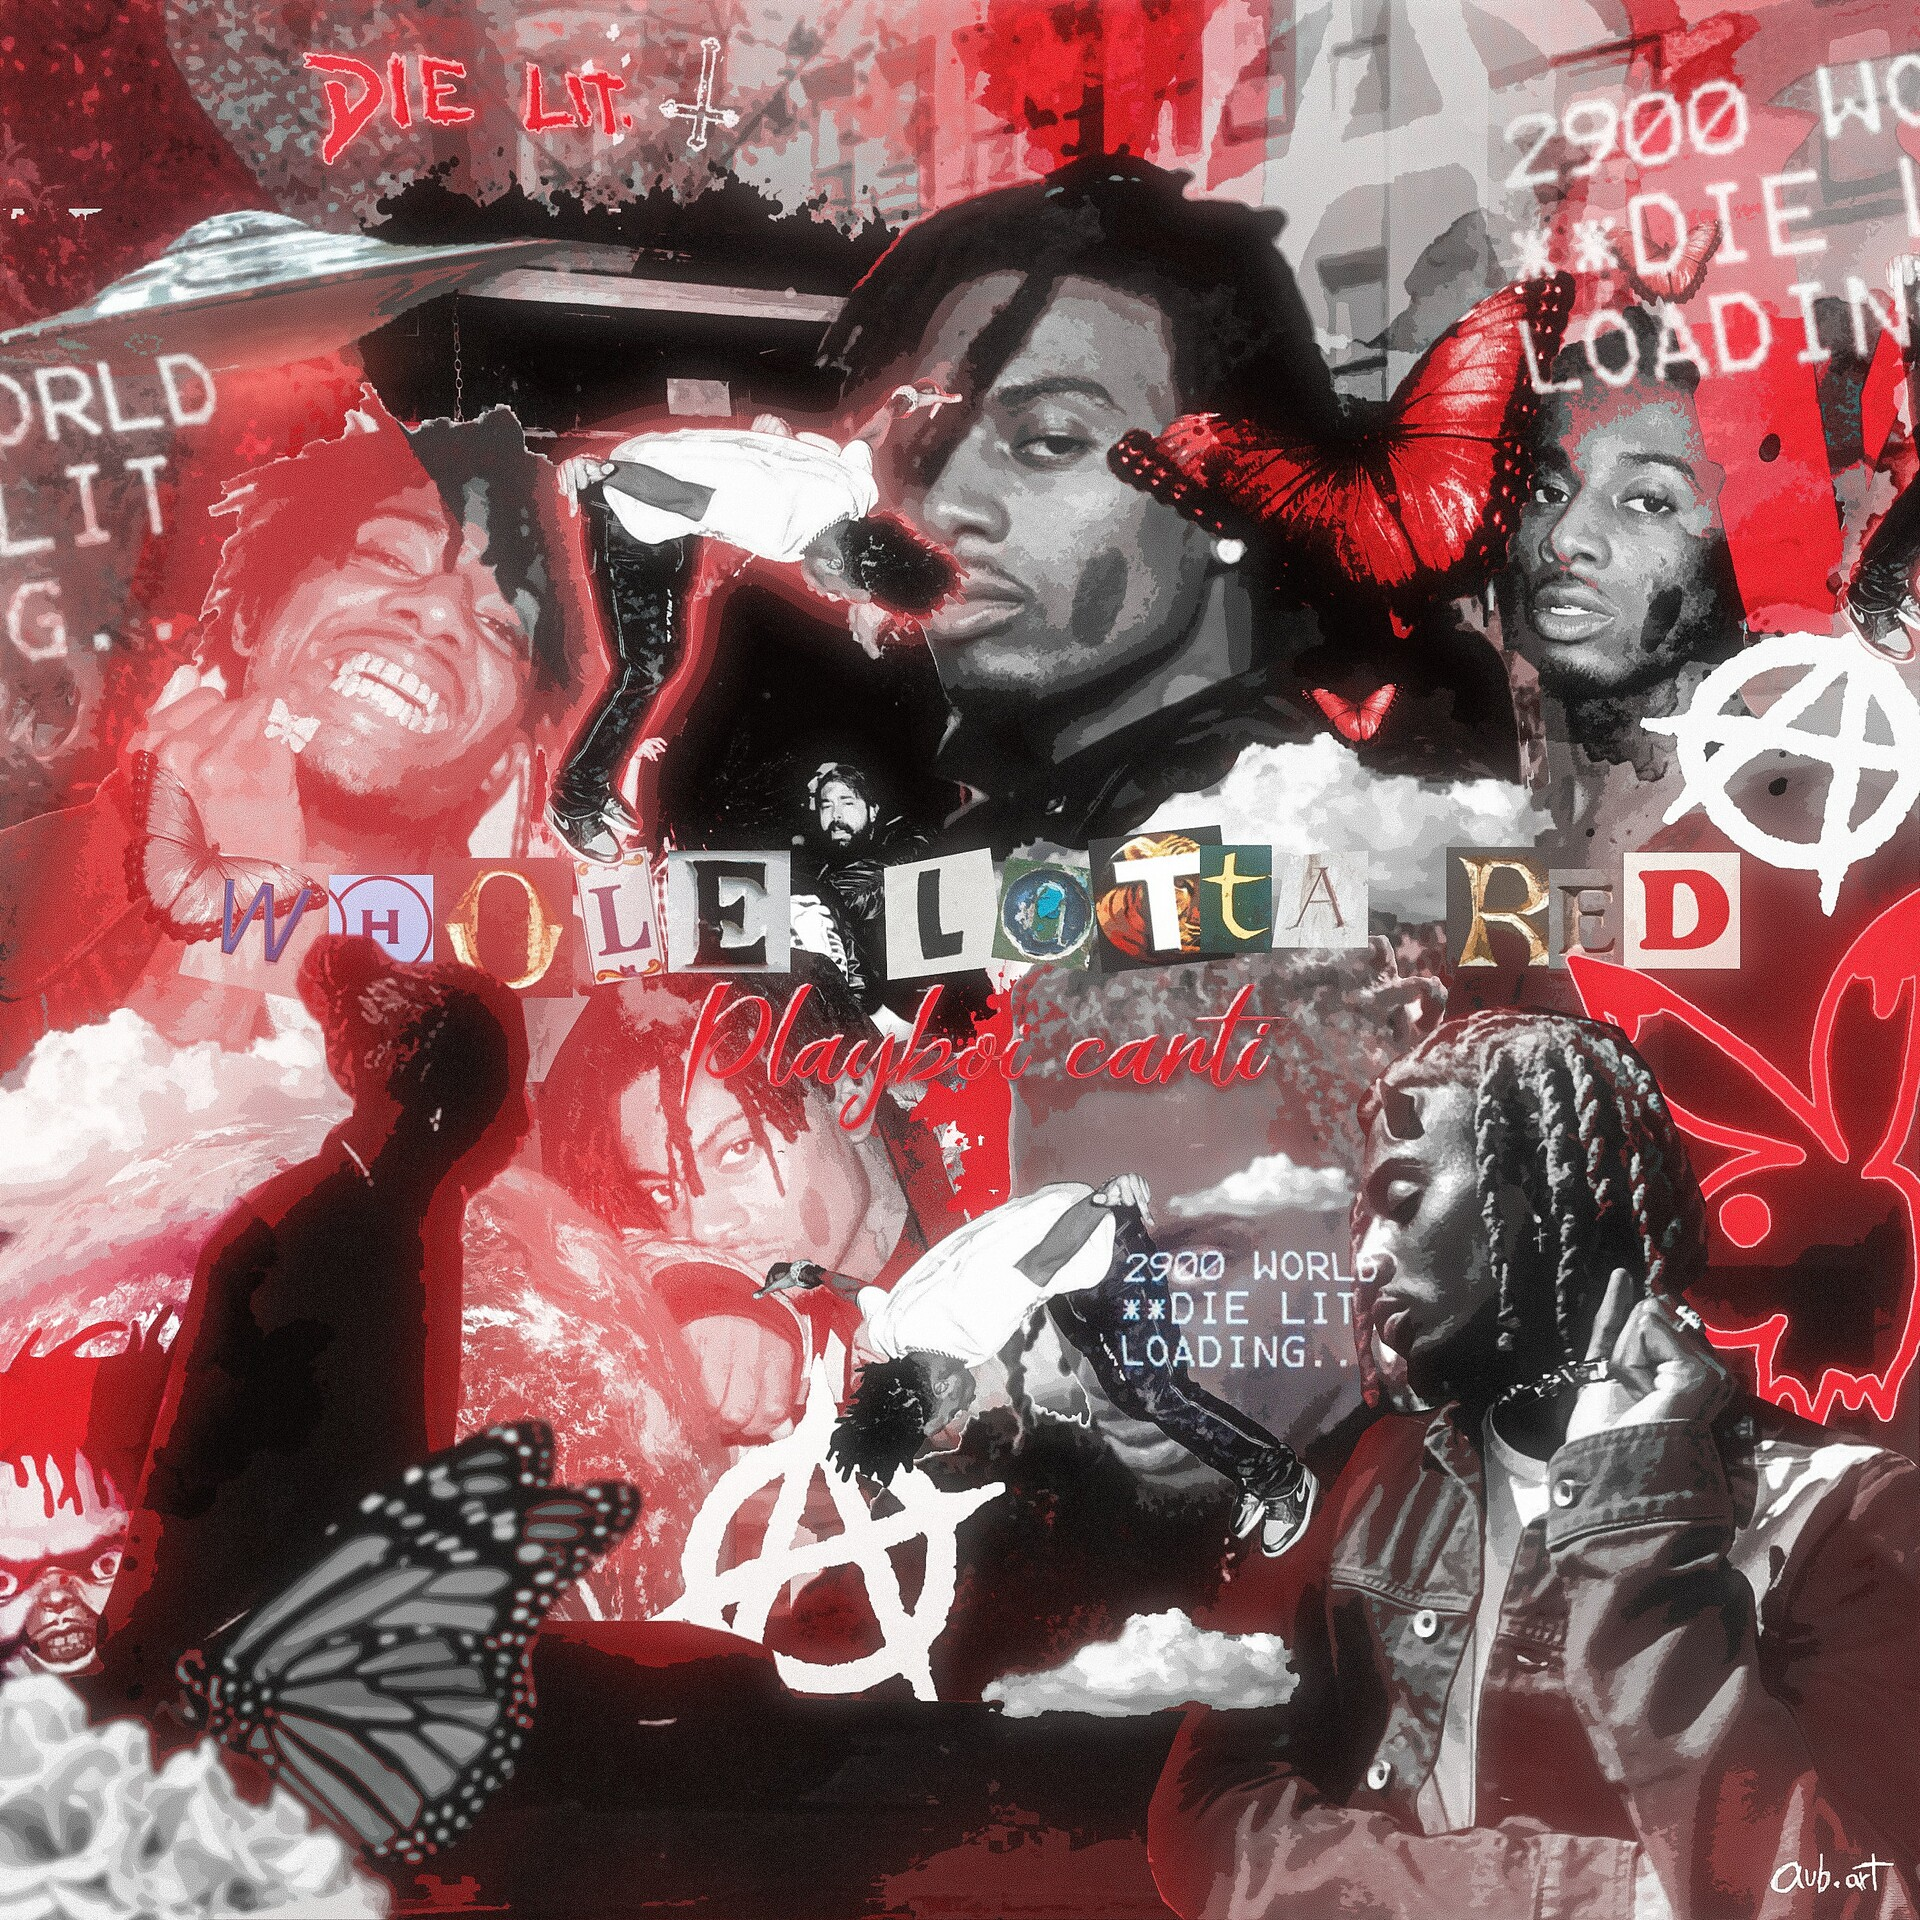 whole lotta red fan made cover art